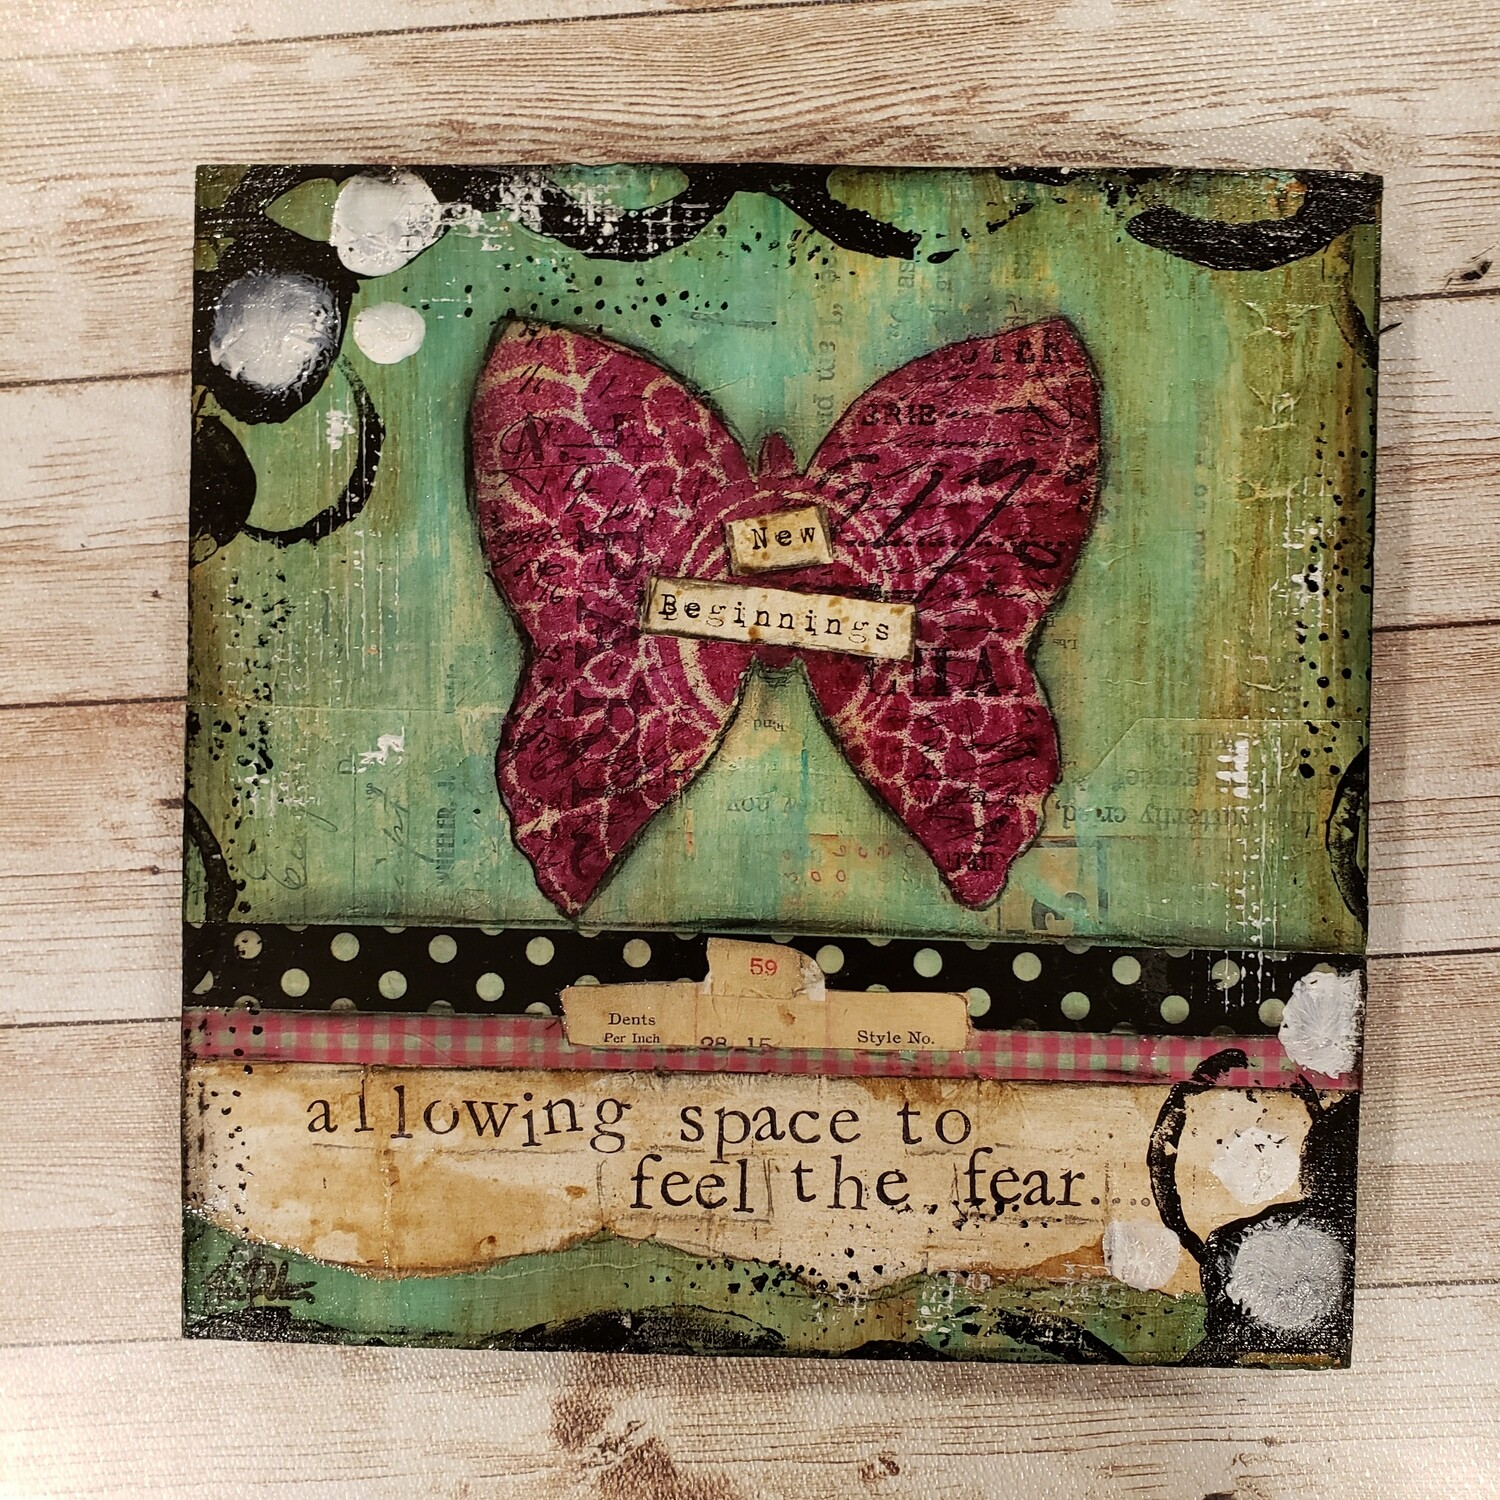 """New beginnings allowing space"" 8x8 clearance mixed media original"